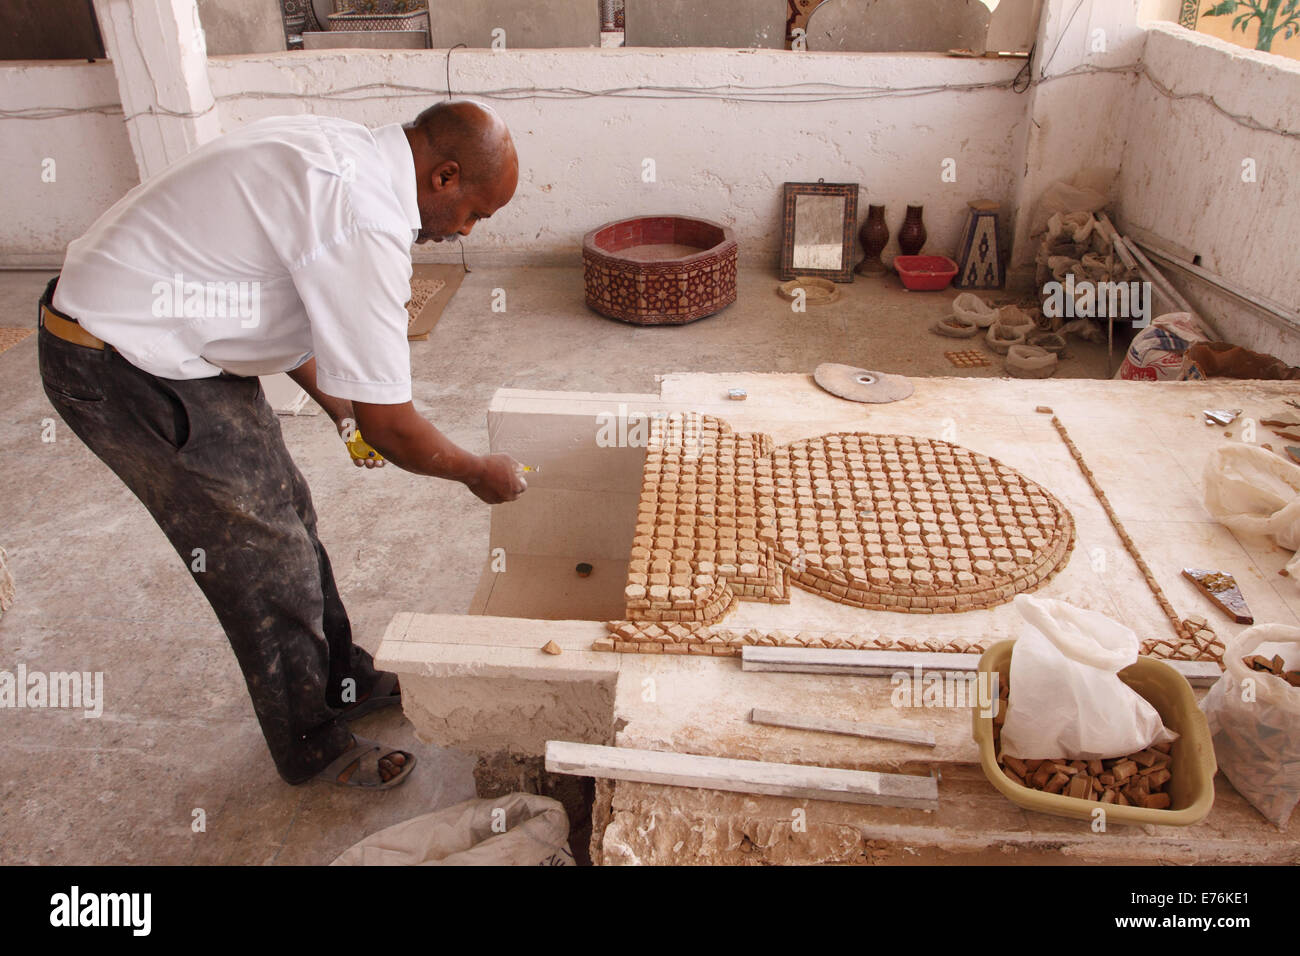 Fez fes morocco skilled worker making a ceramic tile mosaic the fez fes morocco skilled worker making a ceramic tile mosaic the mosaic is constructed inverted with the colour side face down dailygadgetfo Choice Image